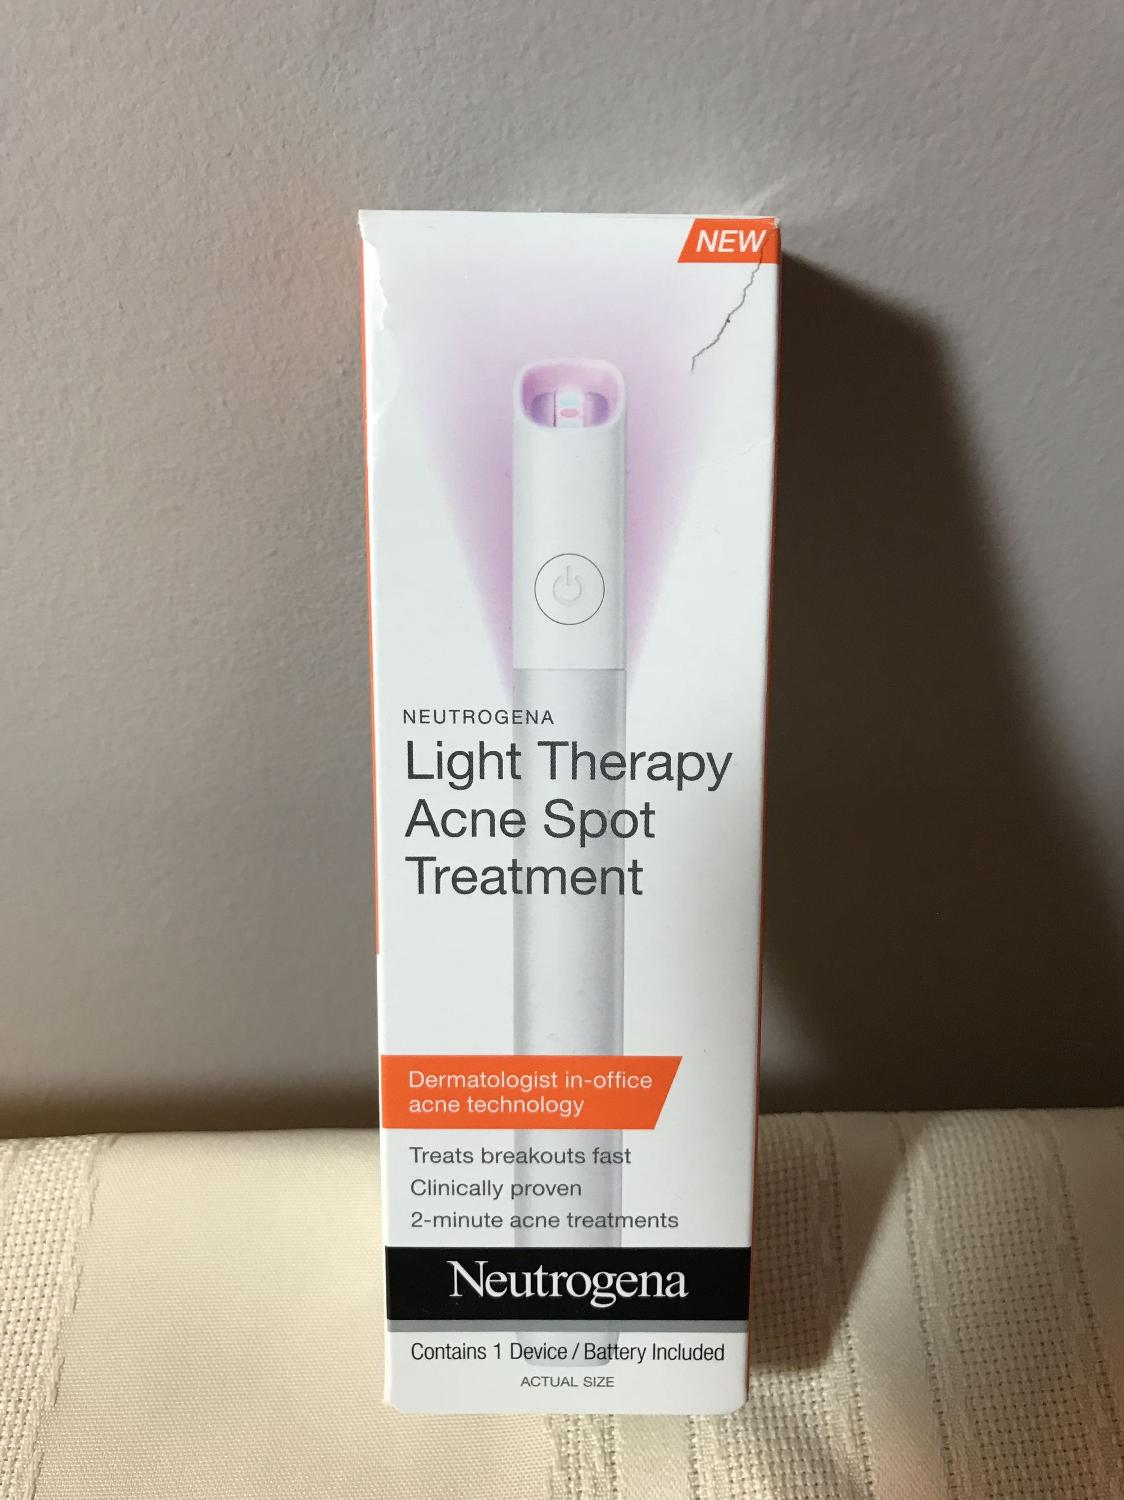 Find More Neutropenia Light Therapy Acne Spot Treatment For Sale